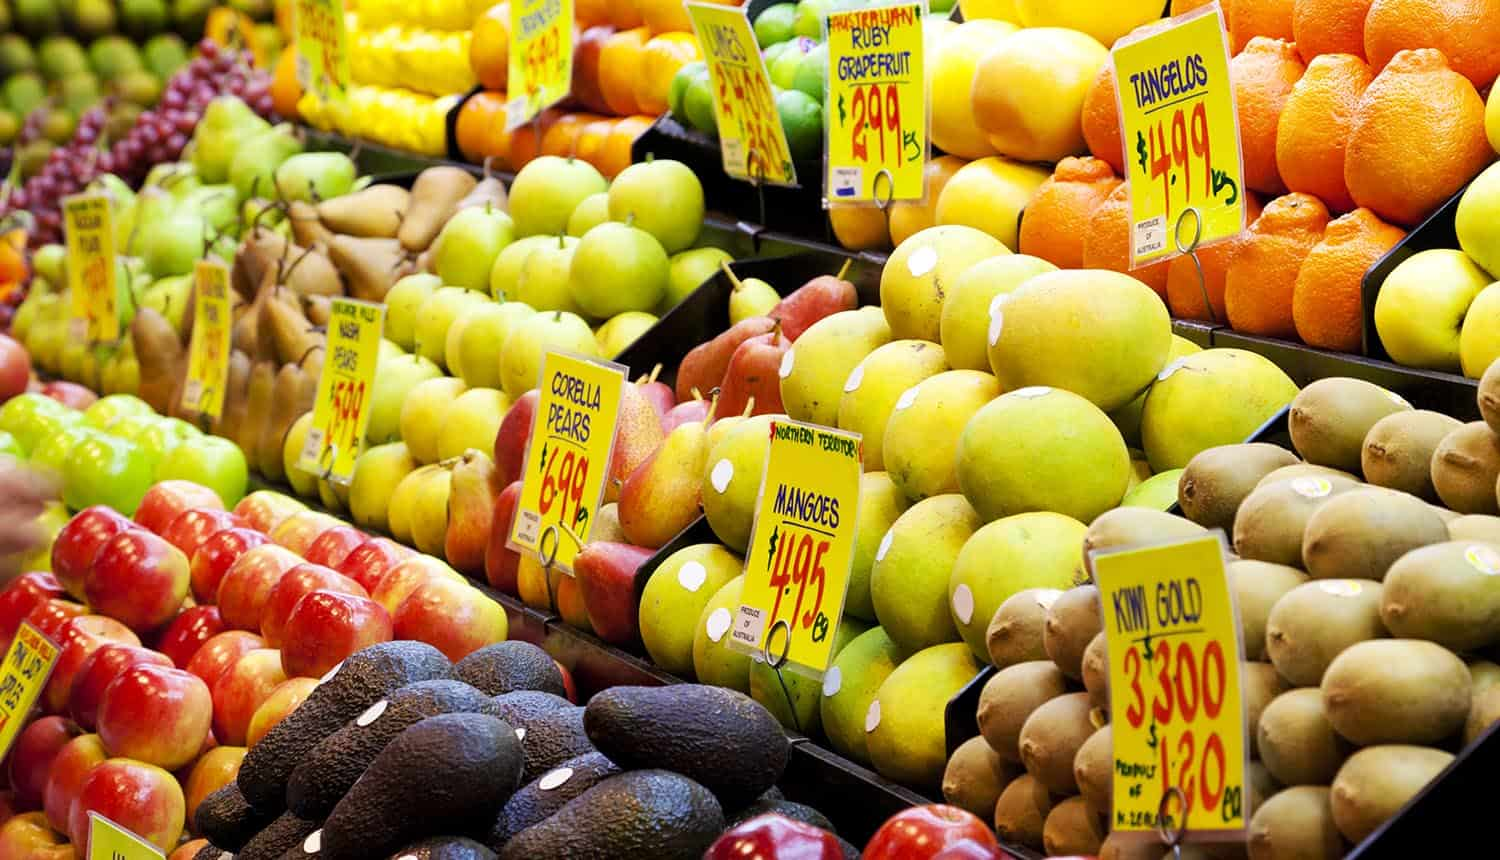 Image of a fruit market representing the idea of who owns my data and whether data can be sold